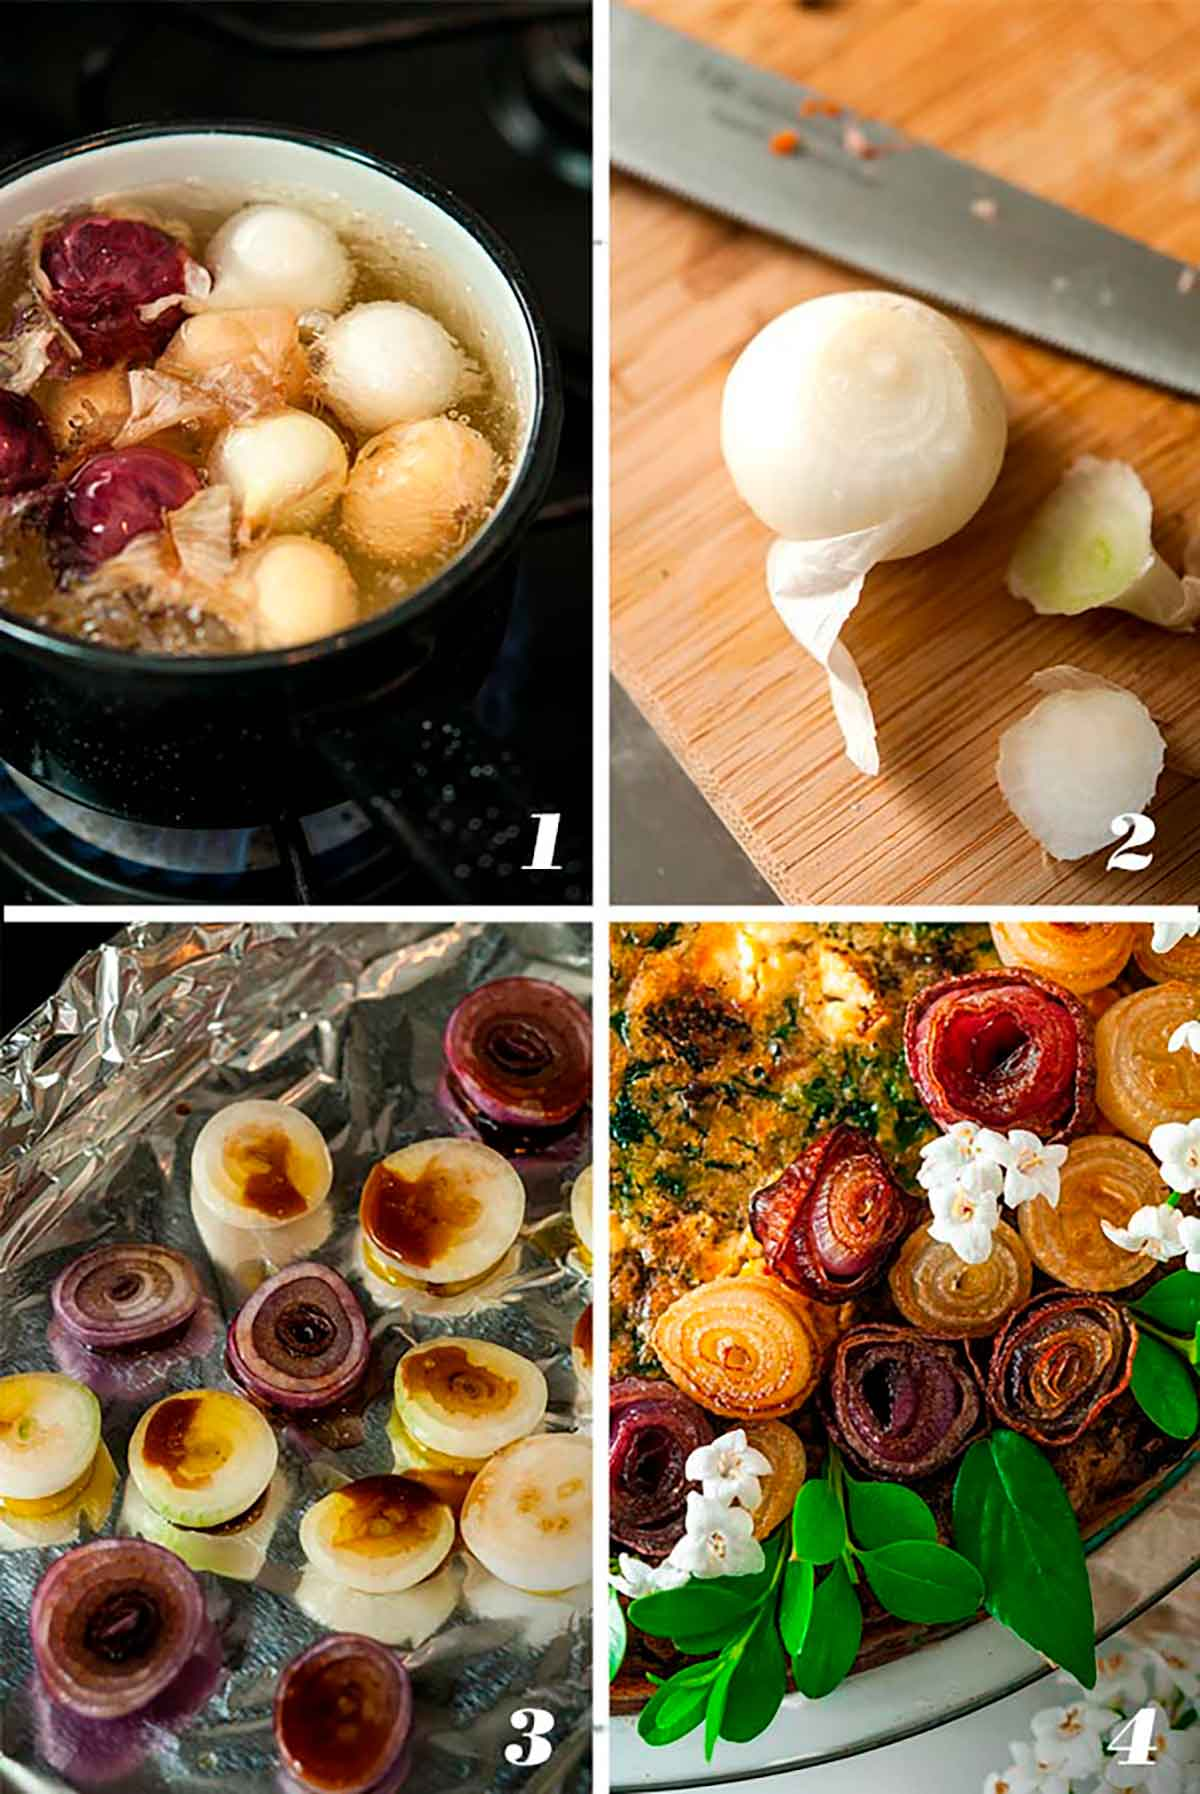 A collage of 4 numbered images showing how to make pearl onion roses.